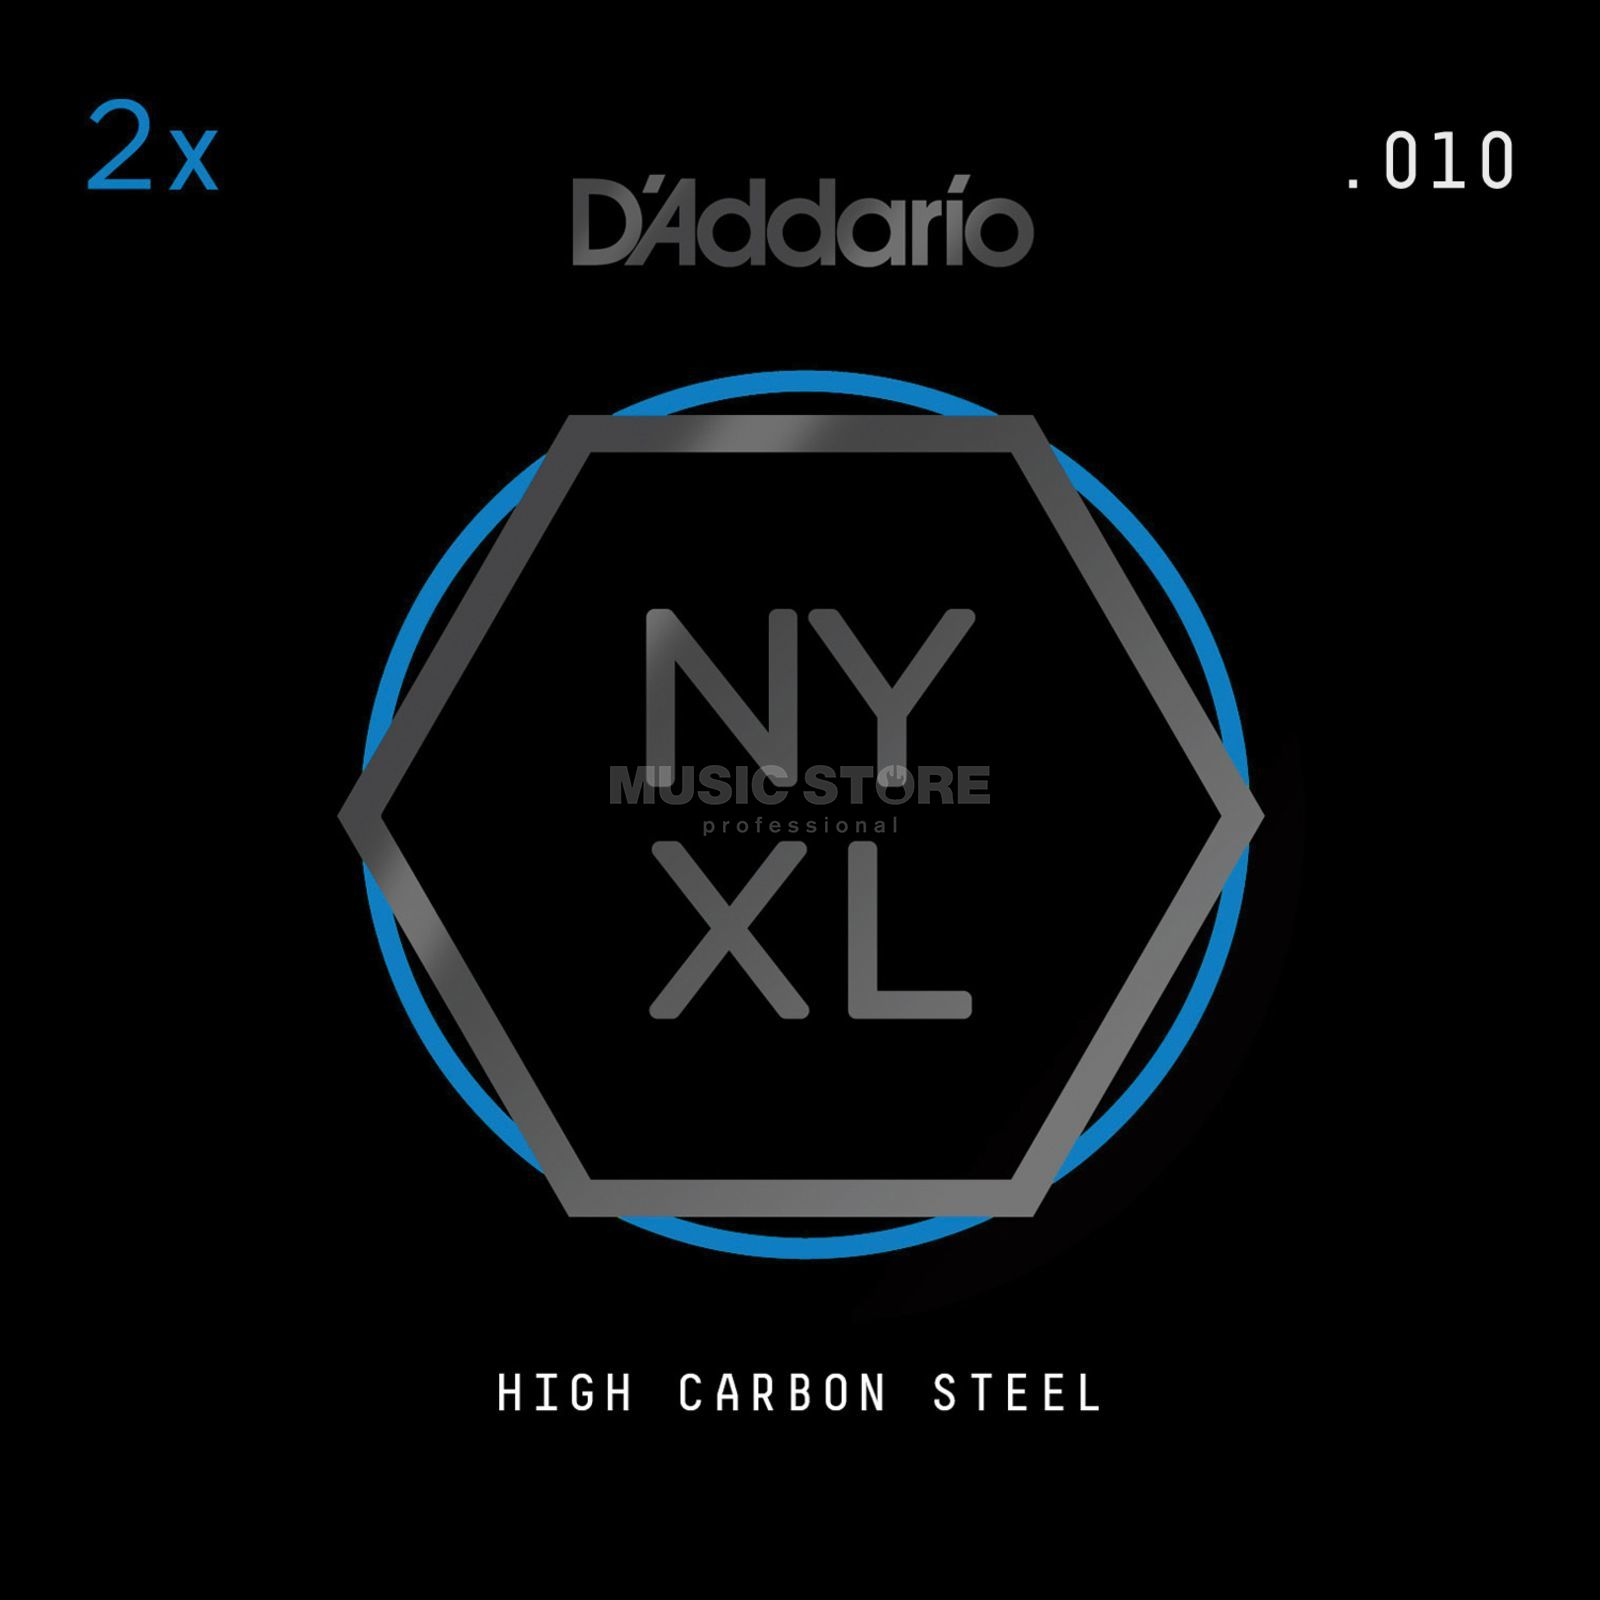 D'Addario NYPL010 Plain Single String 2-Pack - High Carbon Steel Imagem do produto